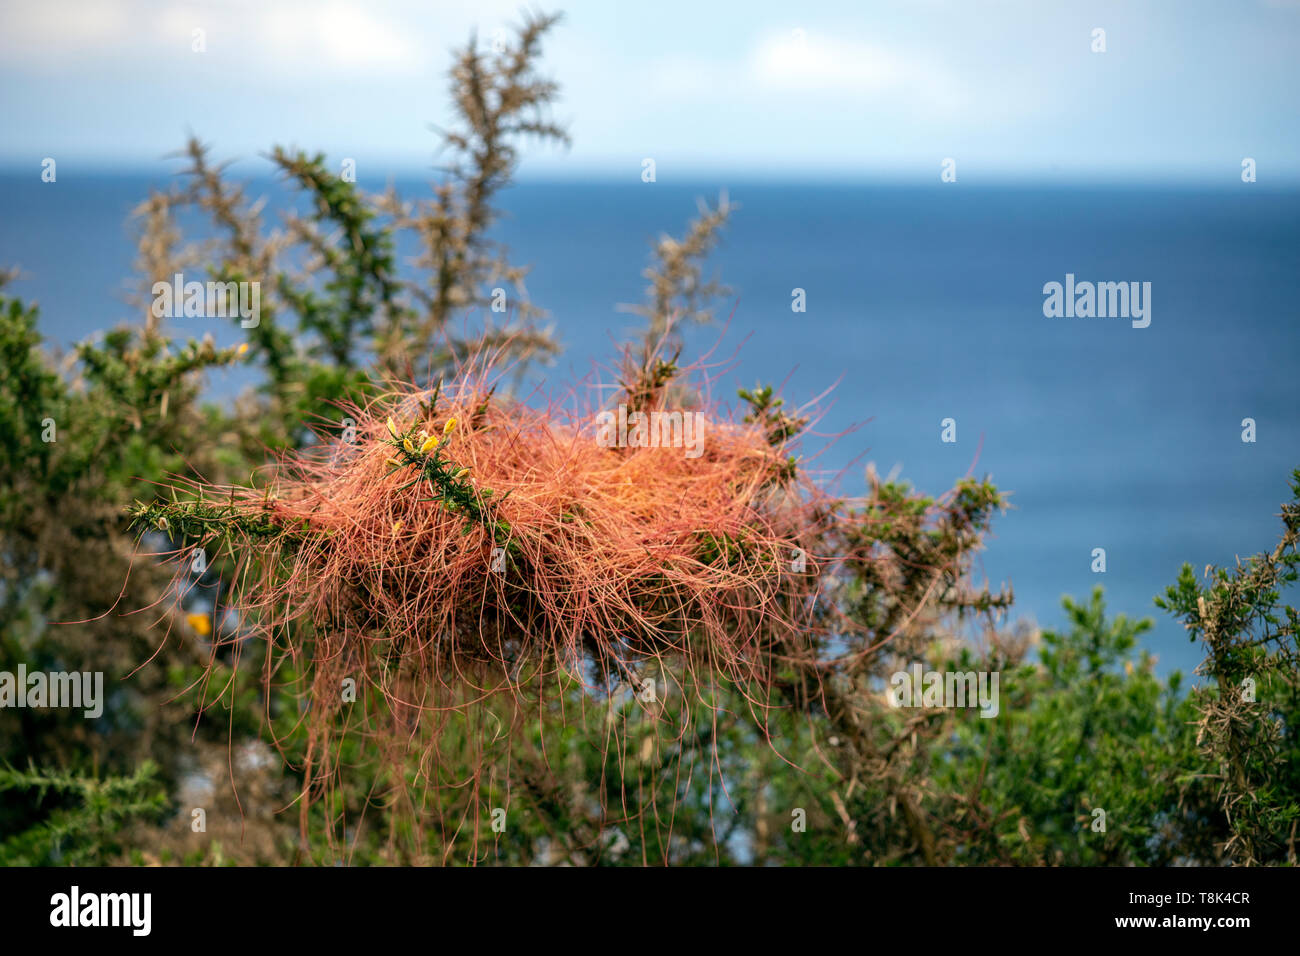 Cuscuta epithymum, a parasitic plant assigned to the Cuscutaceae or Convolvulaceae family, Asturias, Spain - Stock Image